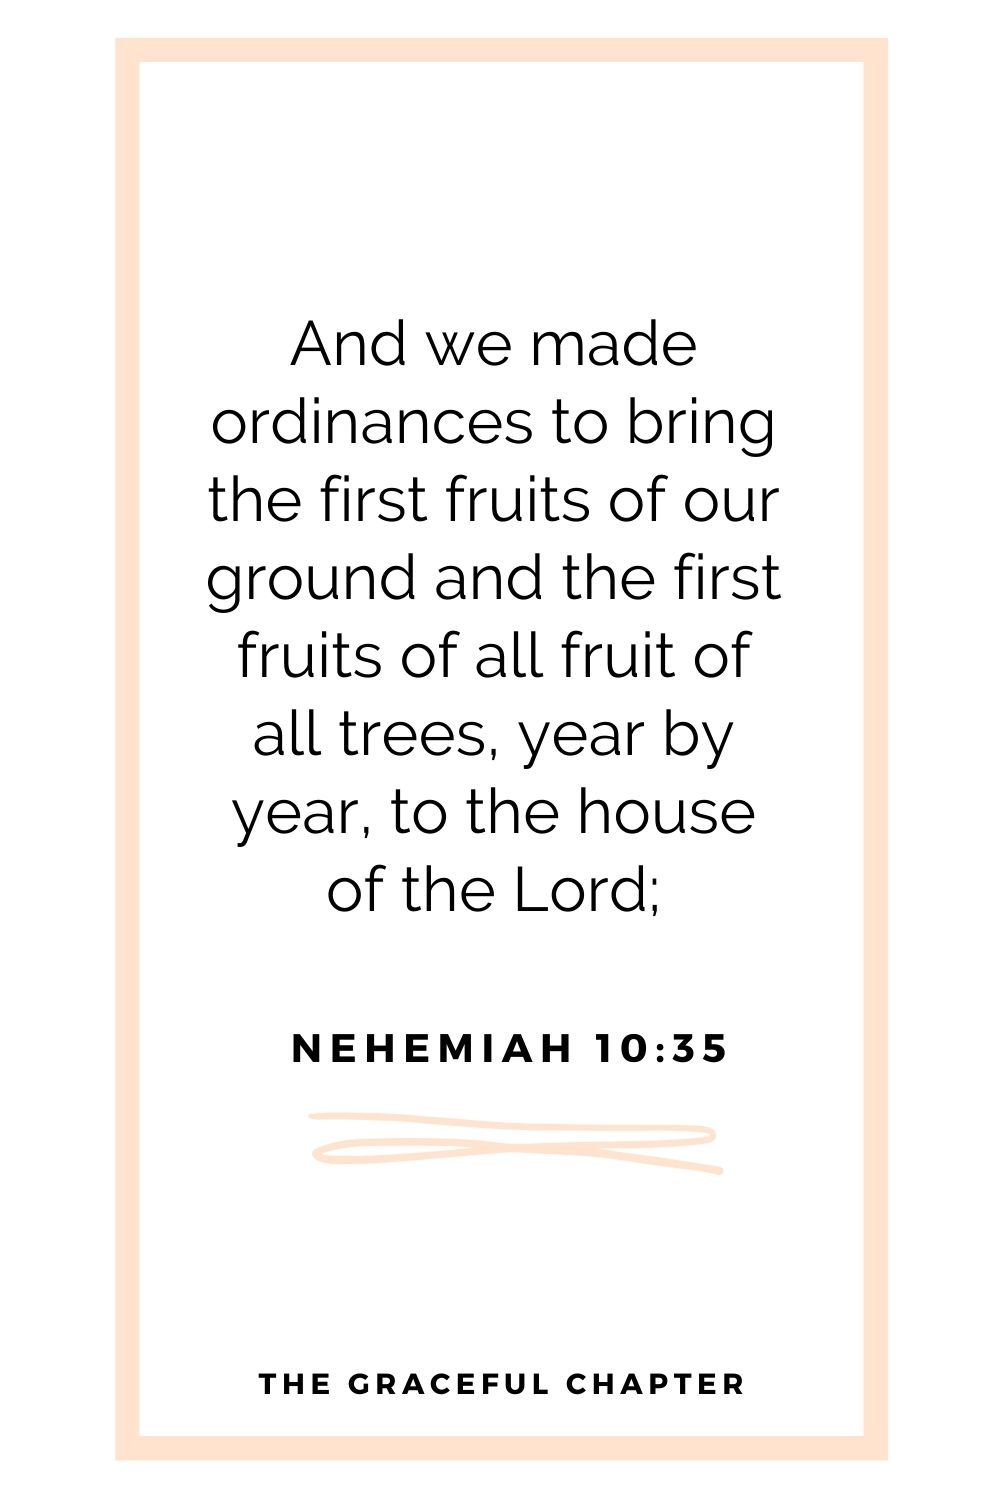 And we made ordinances to bring the first fruits of our ground and the first fruits of all fruit of all trees, year by year, to the house of the Lord; Nehemiah 10:35